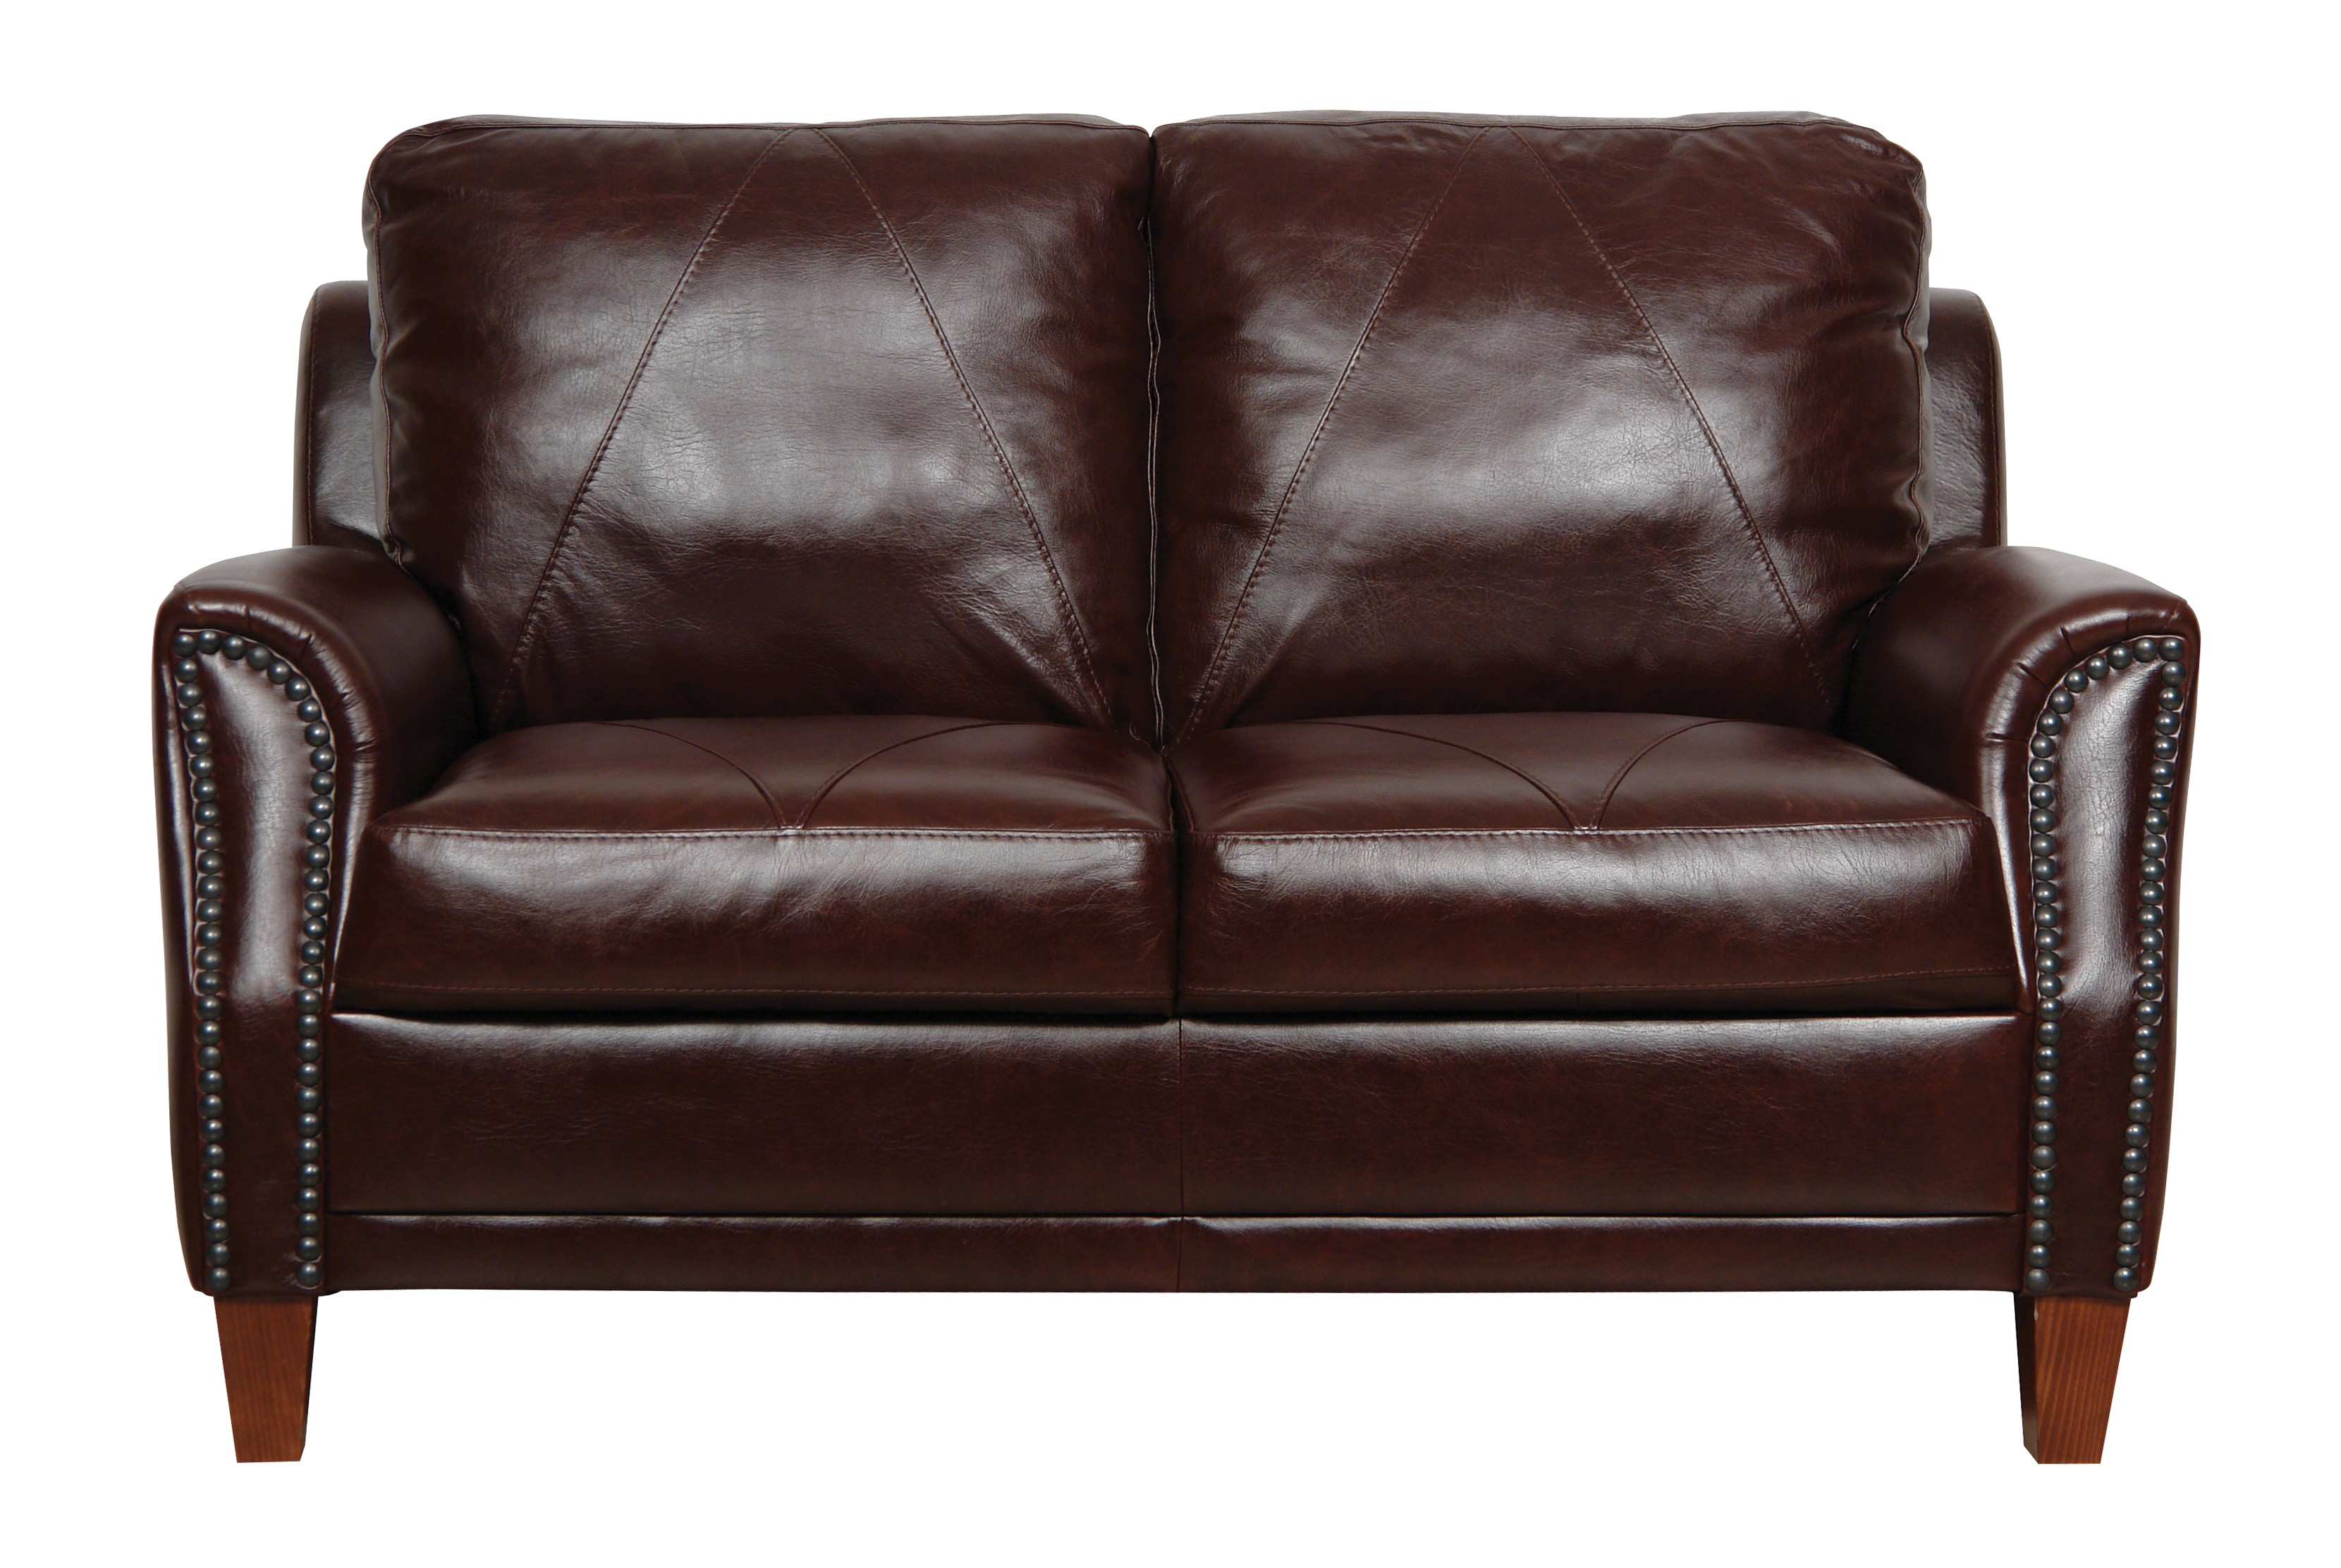 Austin Italian Leather Loveseat From Luke Leather Coleman Furniture